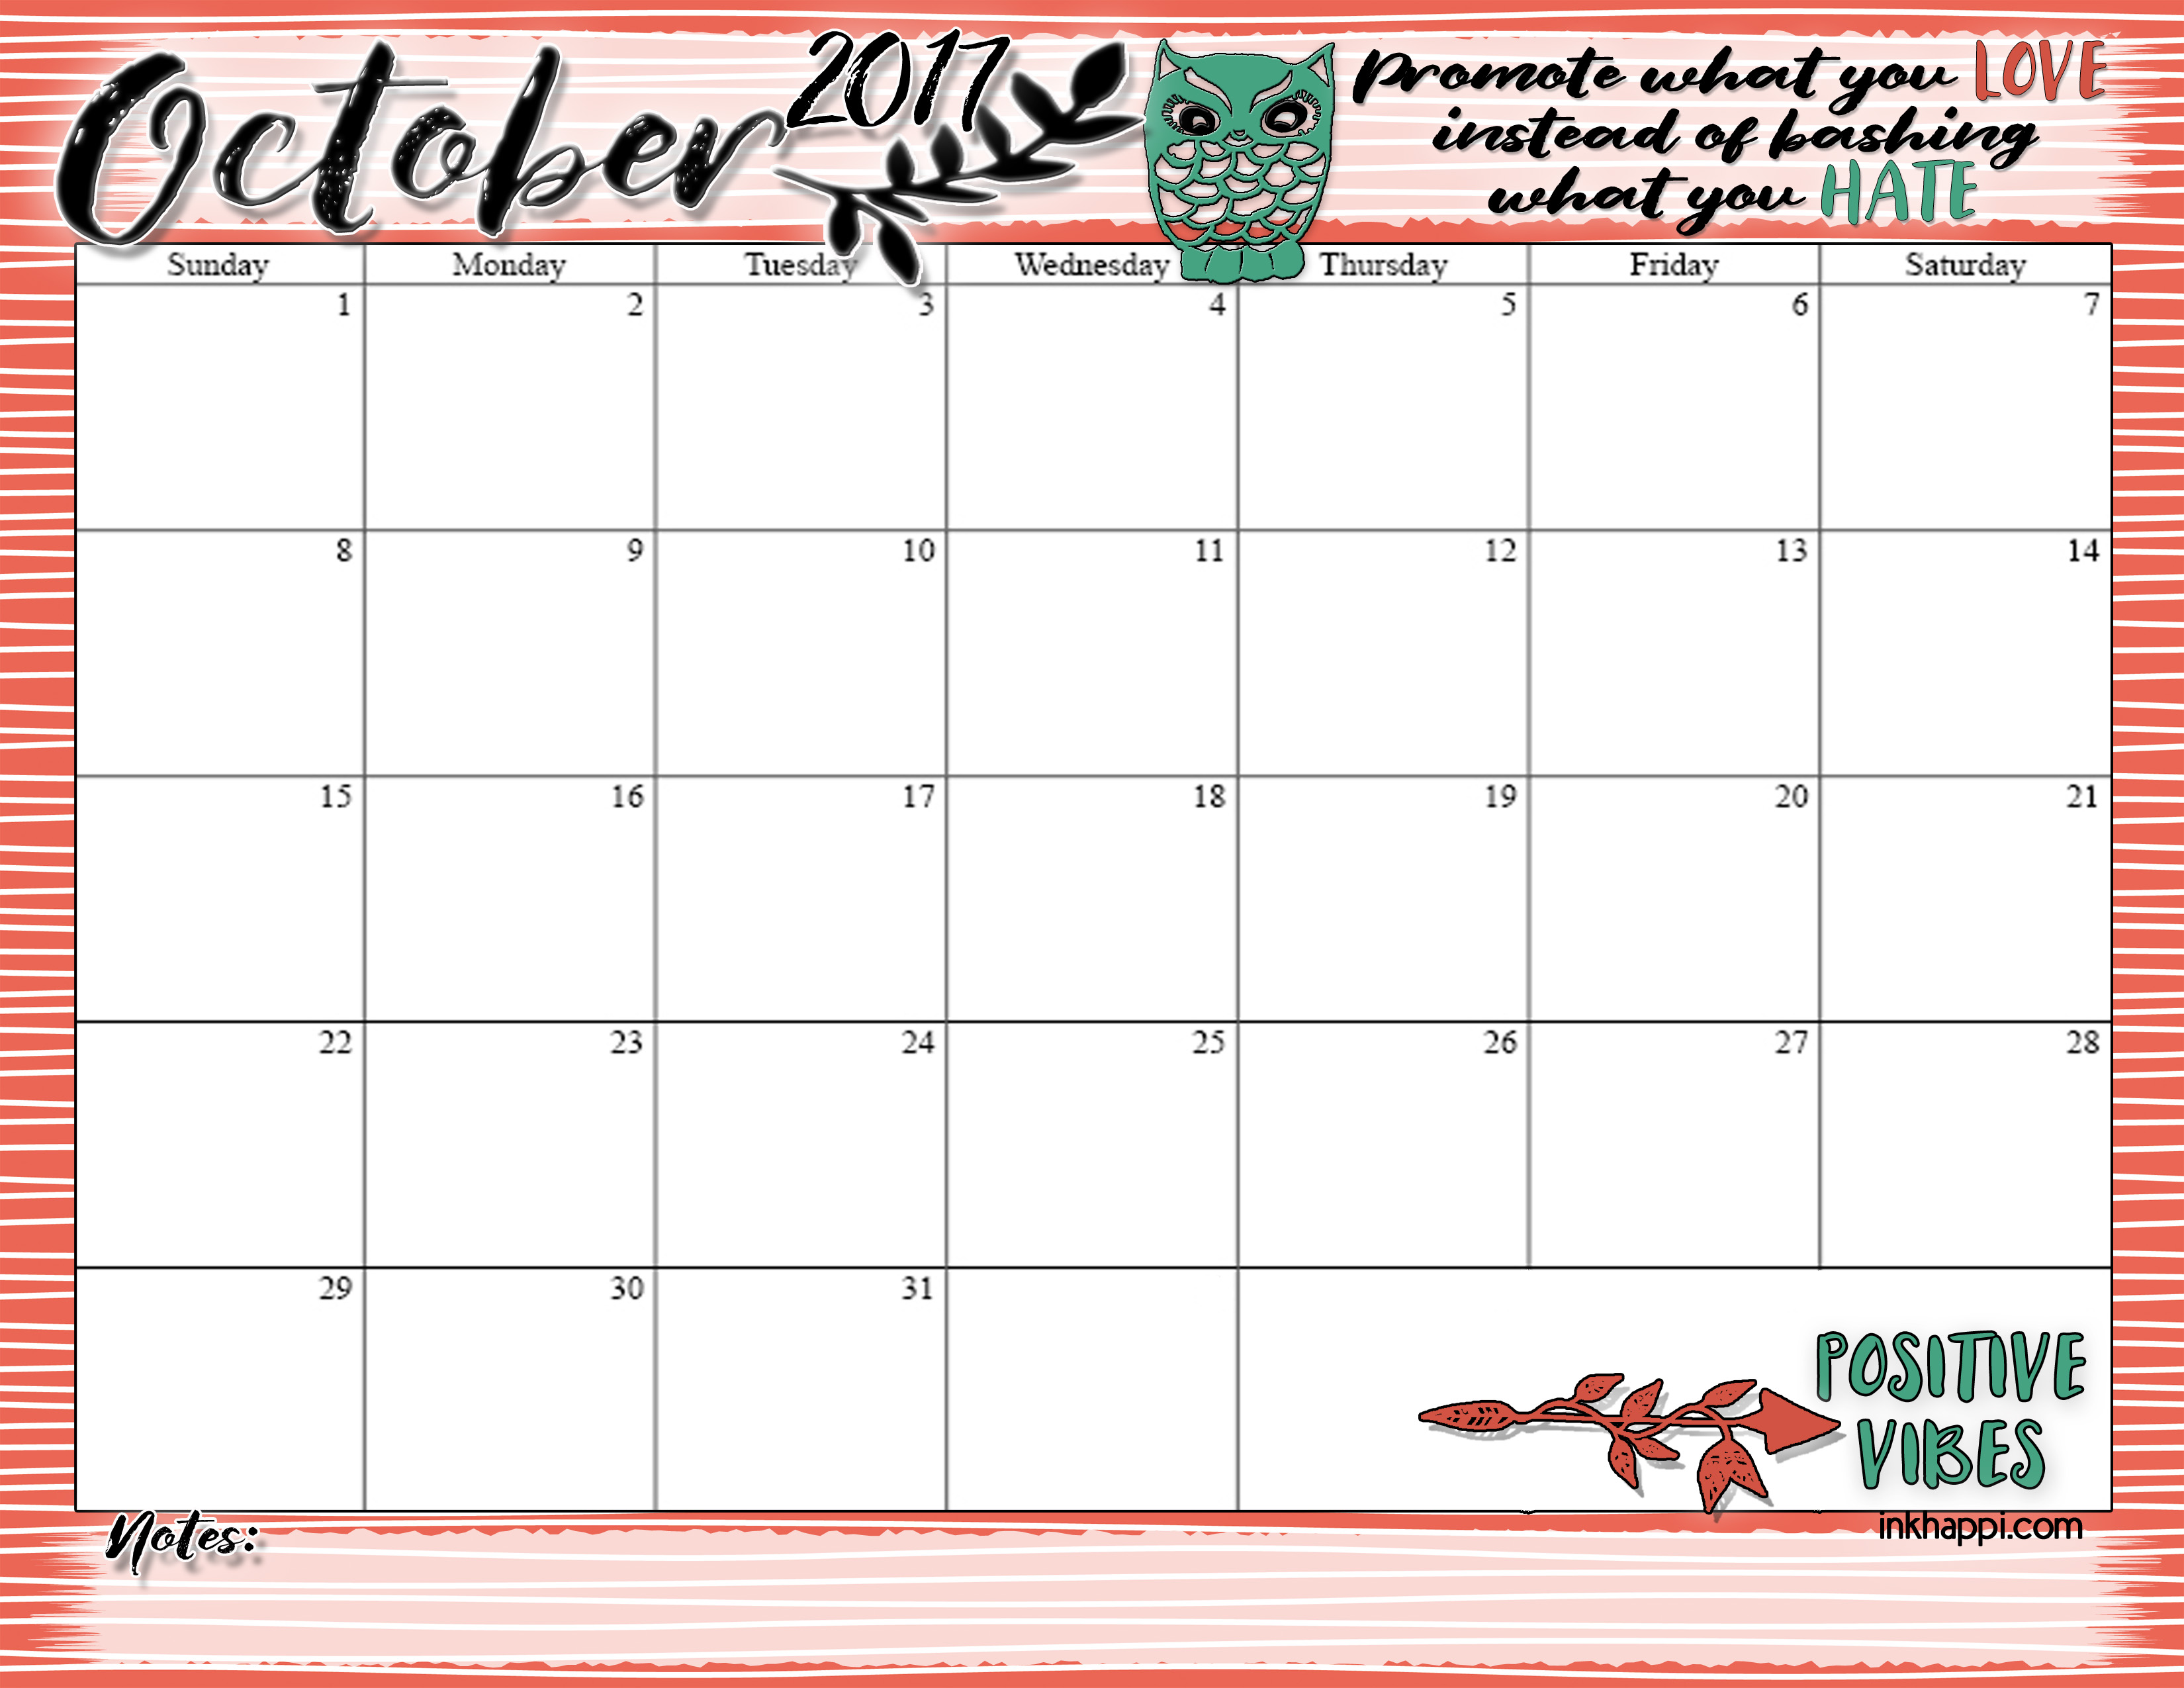 October 2017 calendar and print from inkhappi.